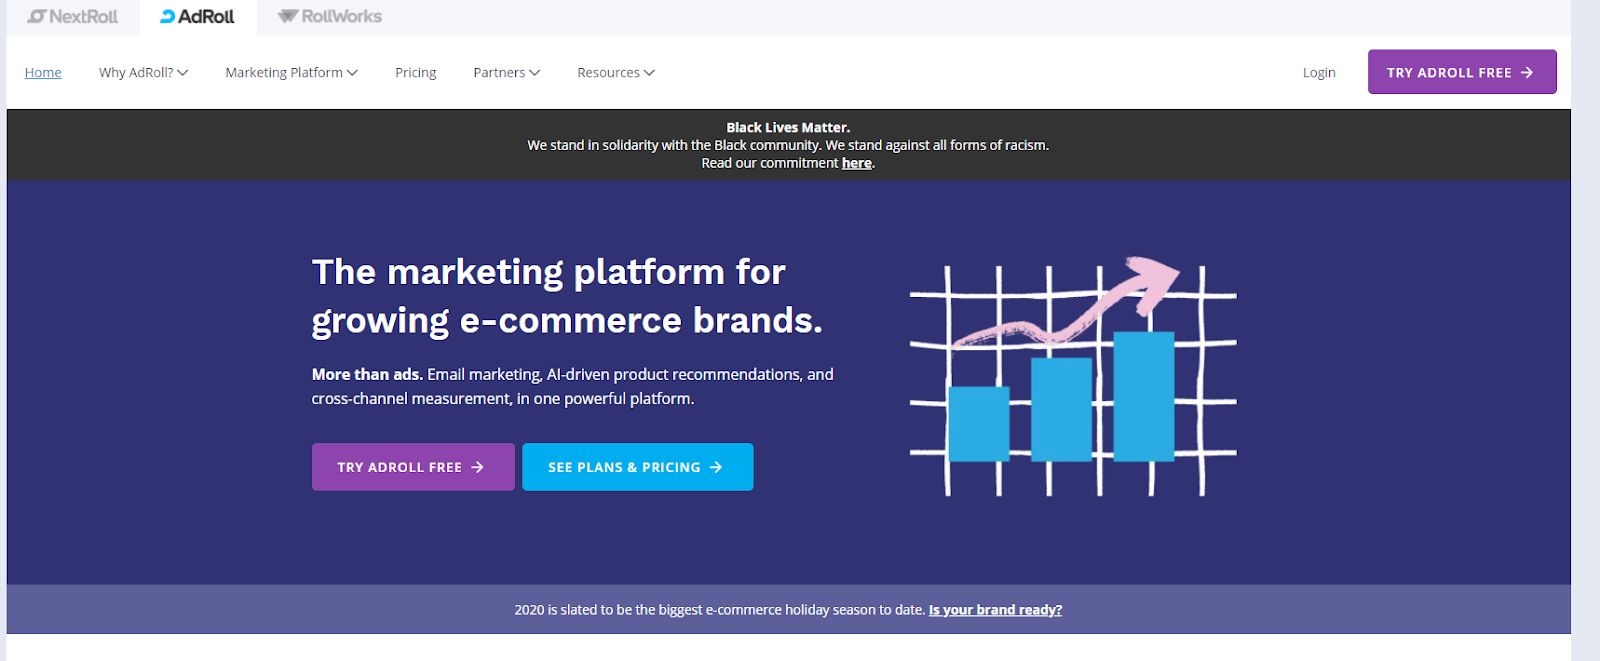 AdRoll is a solid option for ecommerce stores given the platform connects with online businesses